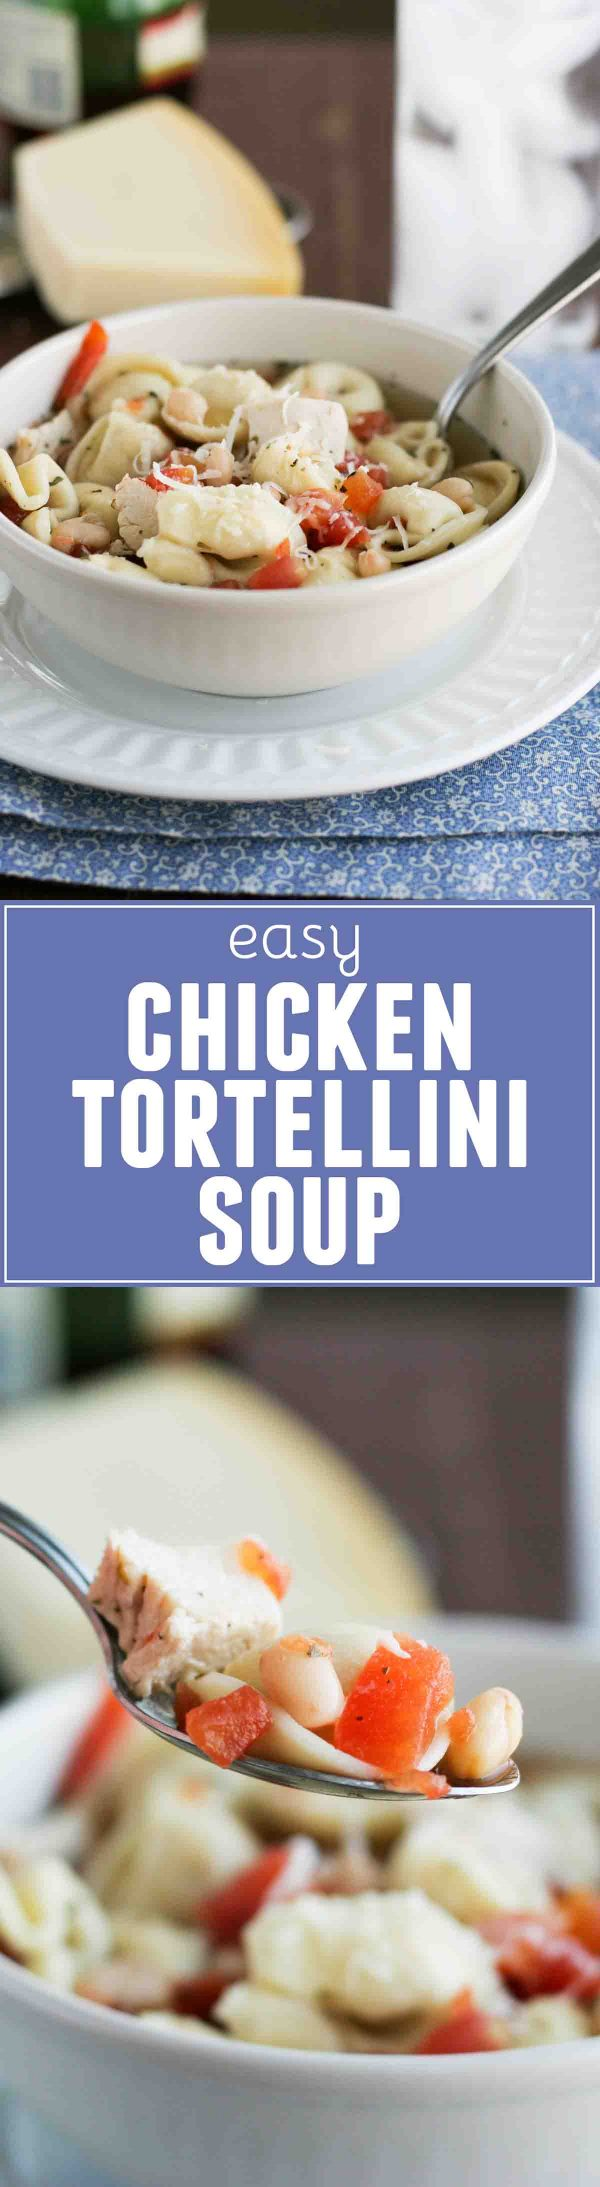 Perfect for a cold night, this Easy Chicken Tortellini Soup is filled with chicken, beans and tortellini, and is done in no time!